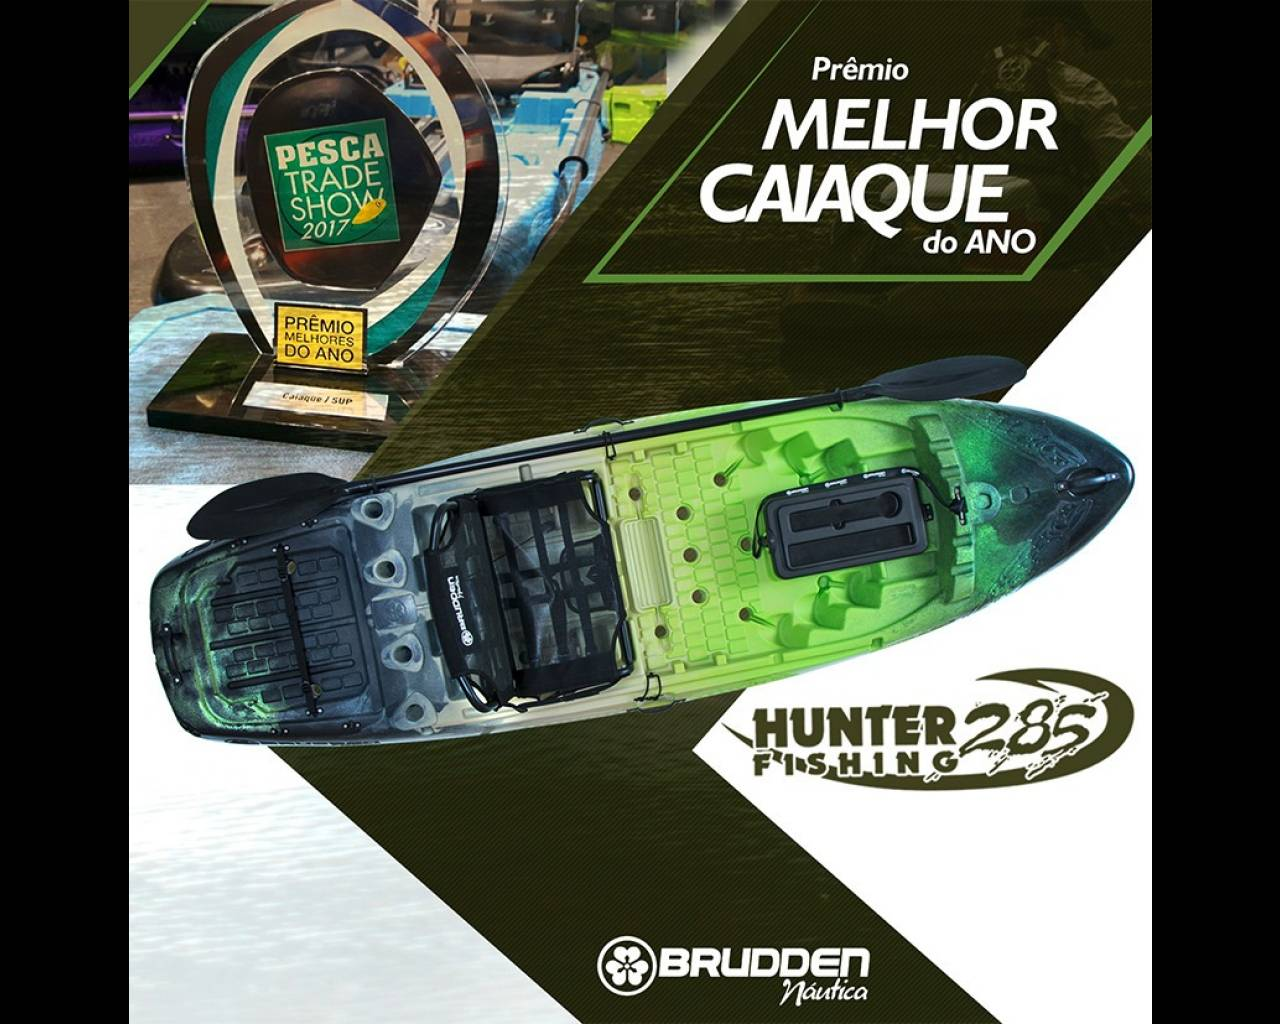 f388c4580 Caiaque Hunter Fishing 285 Brudden Náutica com Cooler